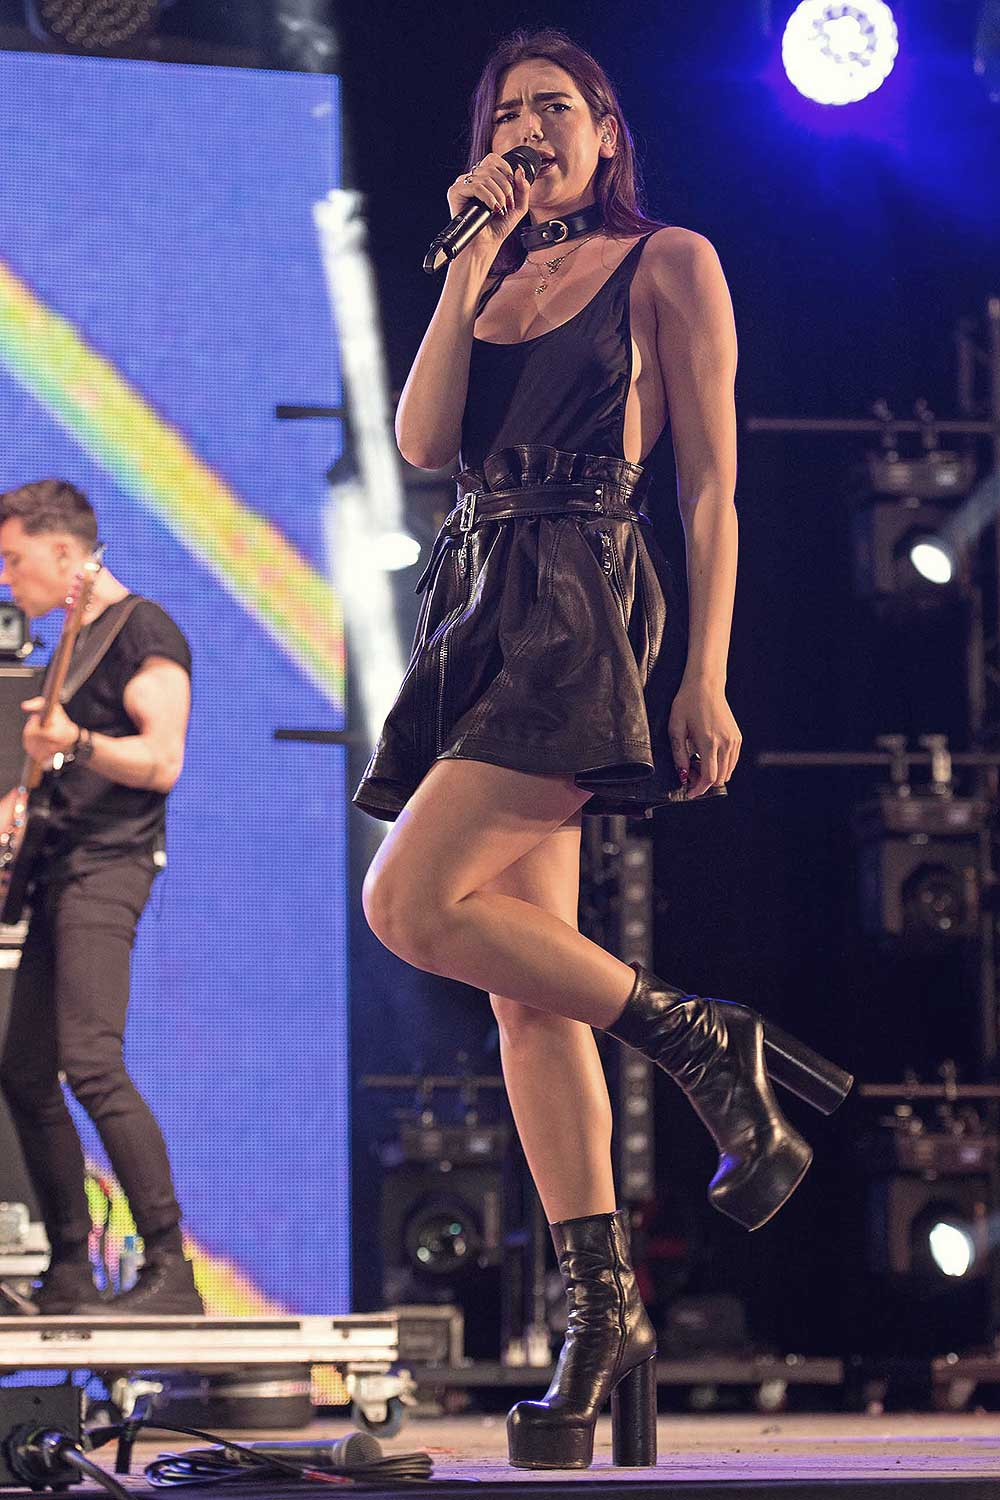 Dua Lipa Performs At The Wireless Festival Leather